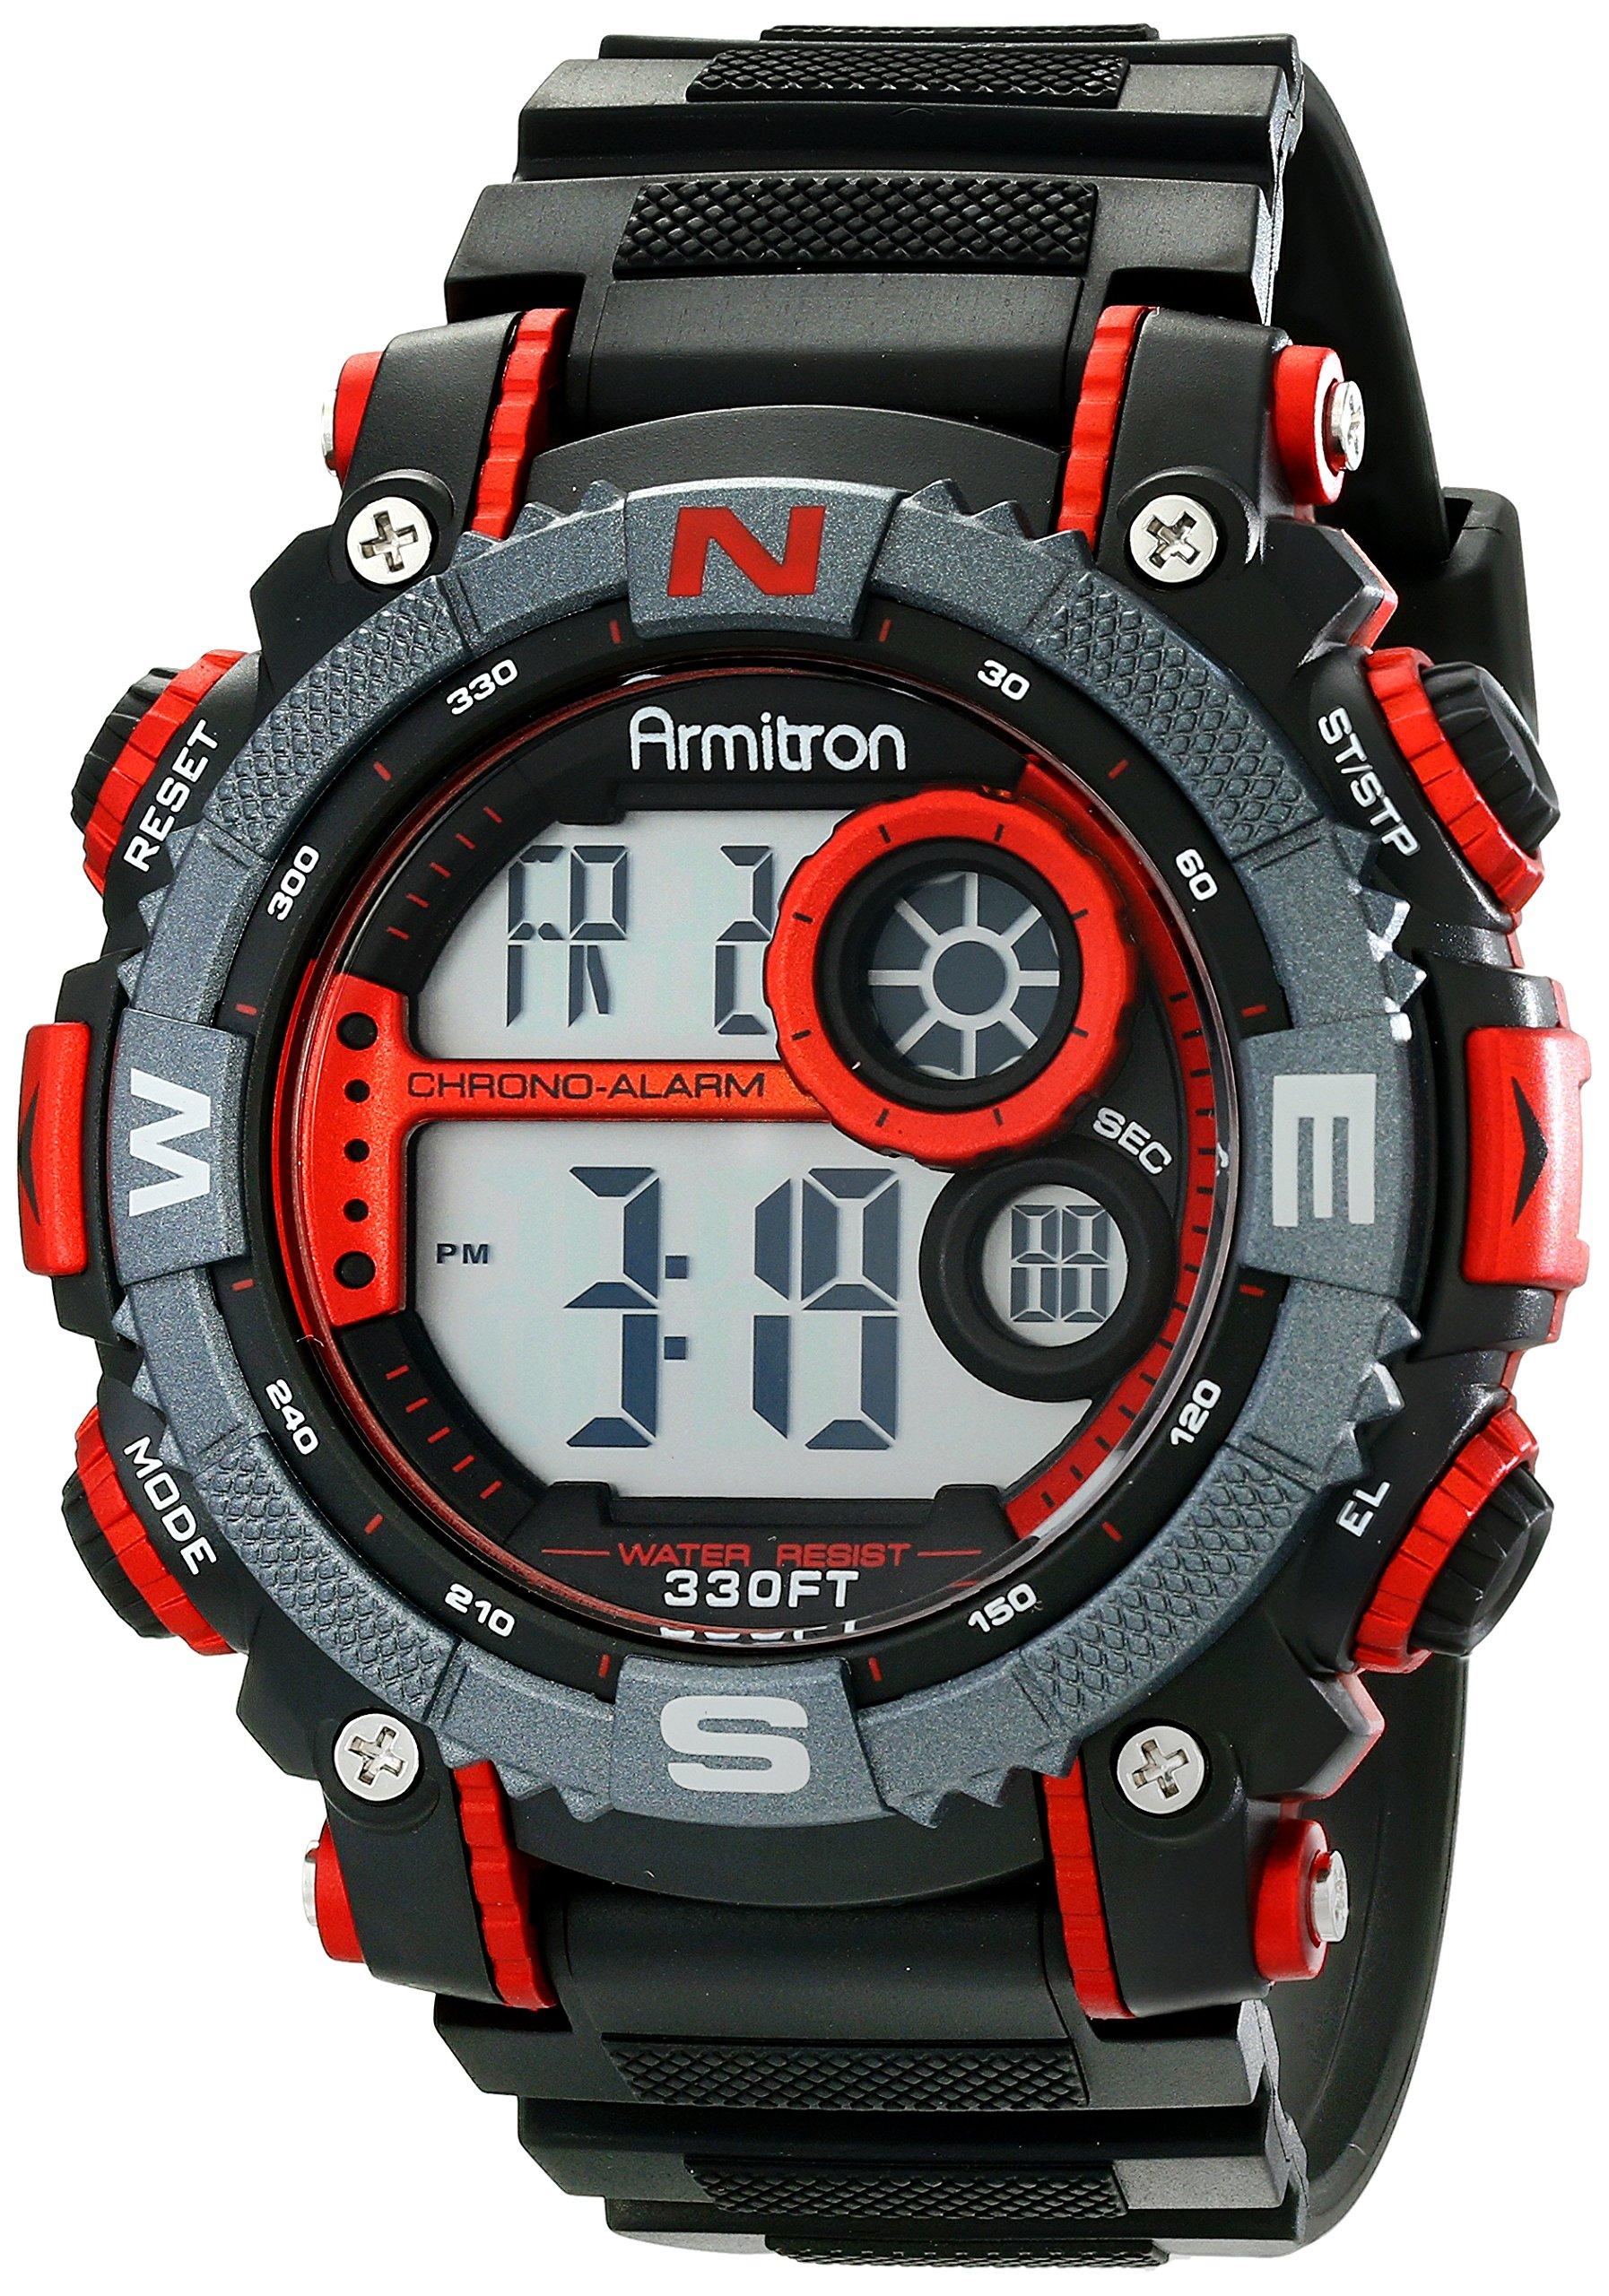 armitron sport watch instructions